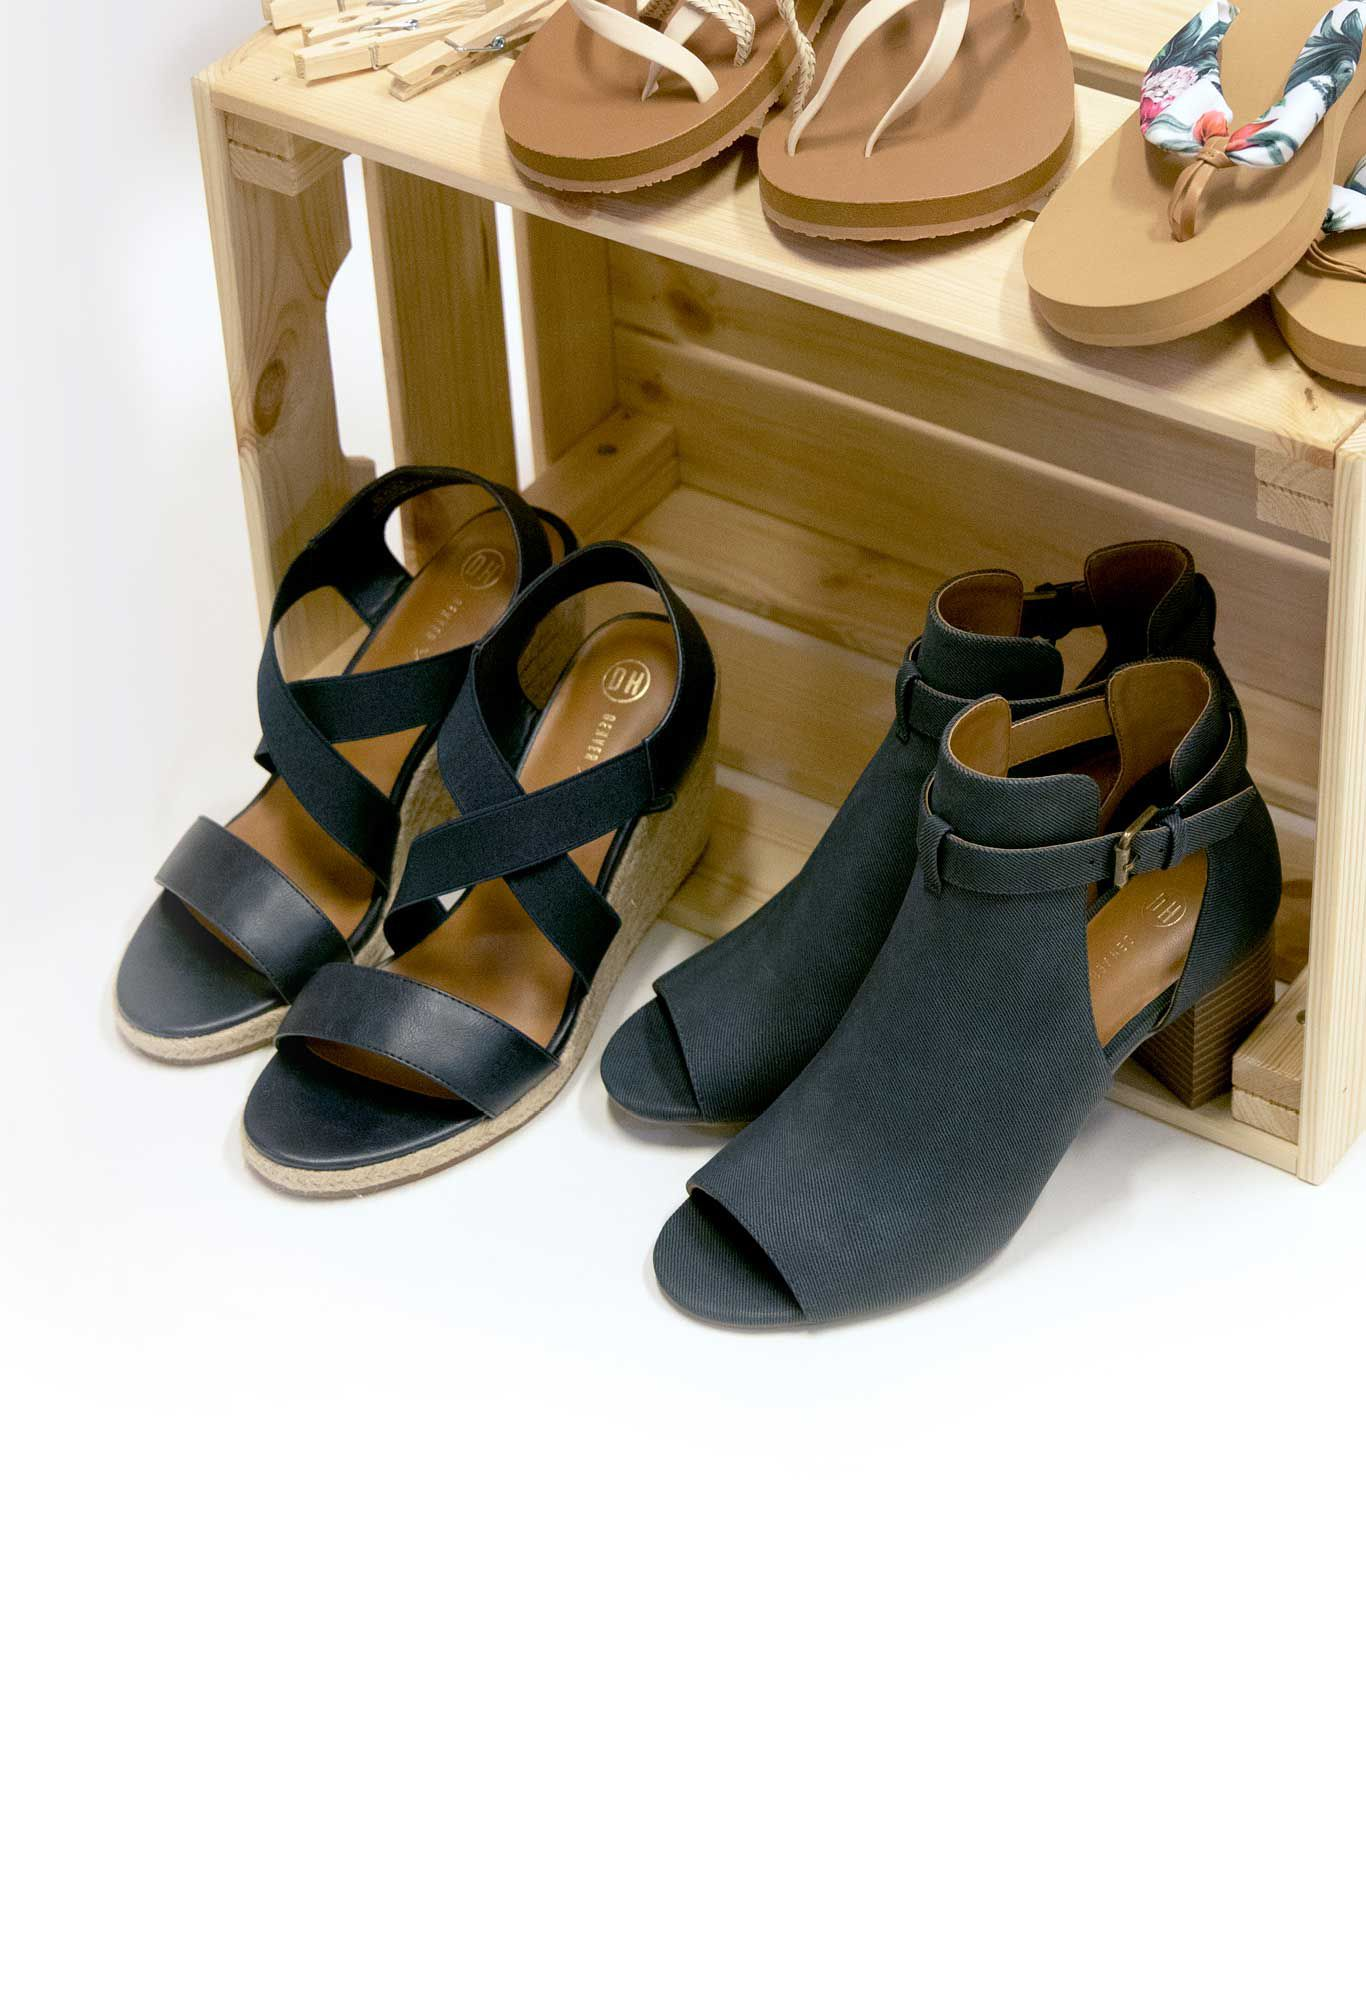 Summer Classics - Women's Sandals